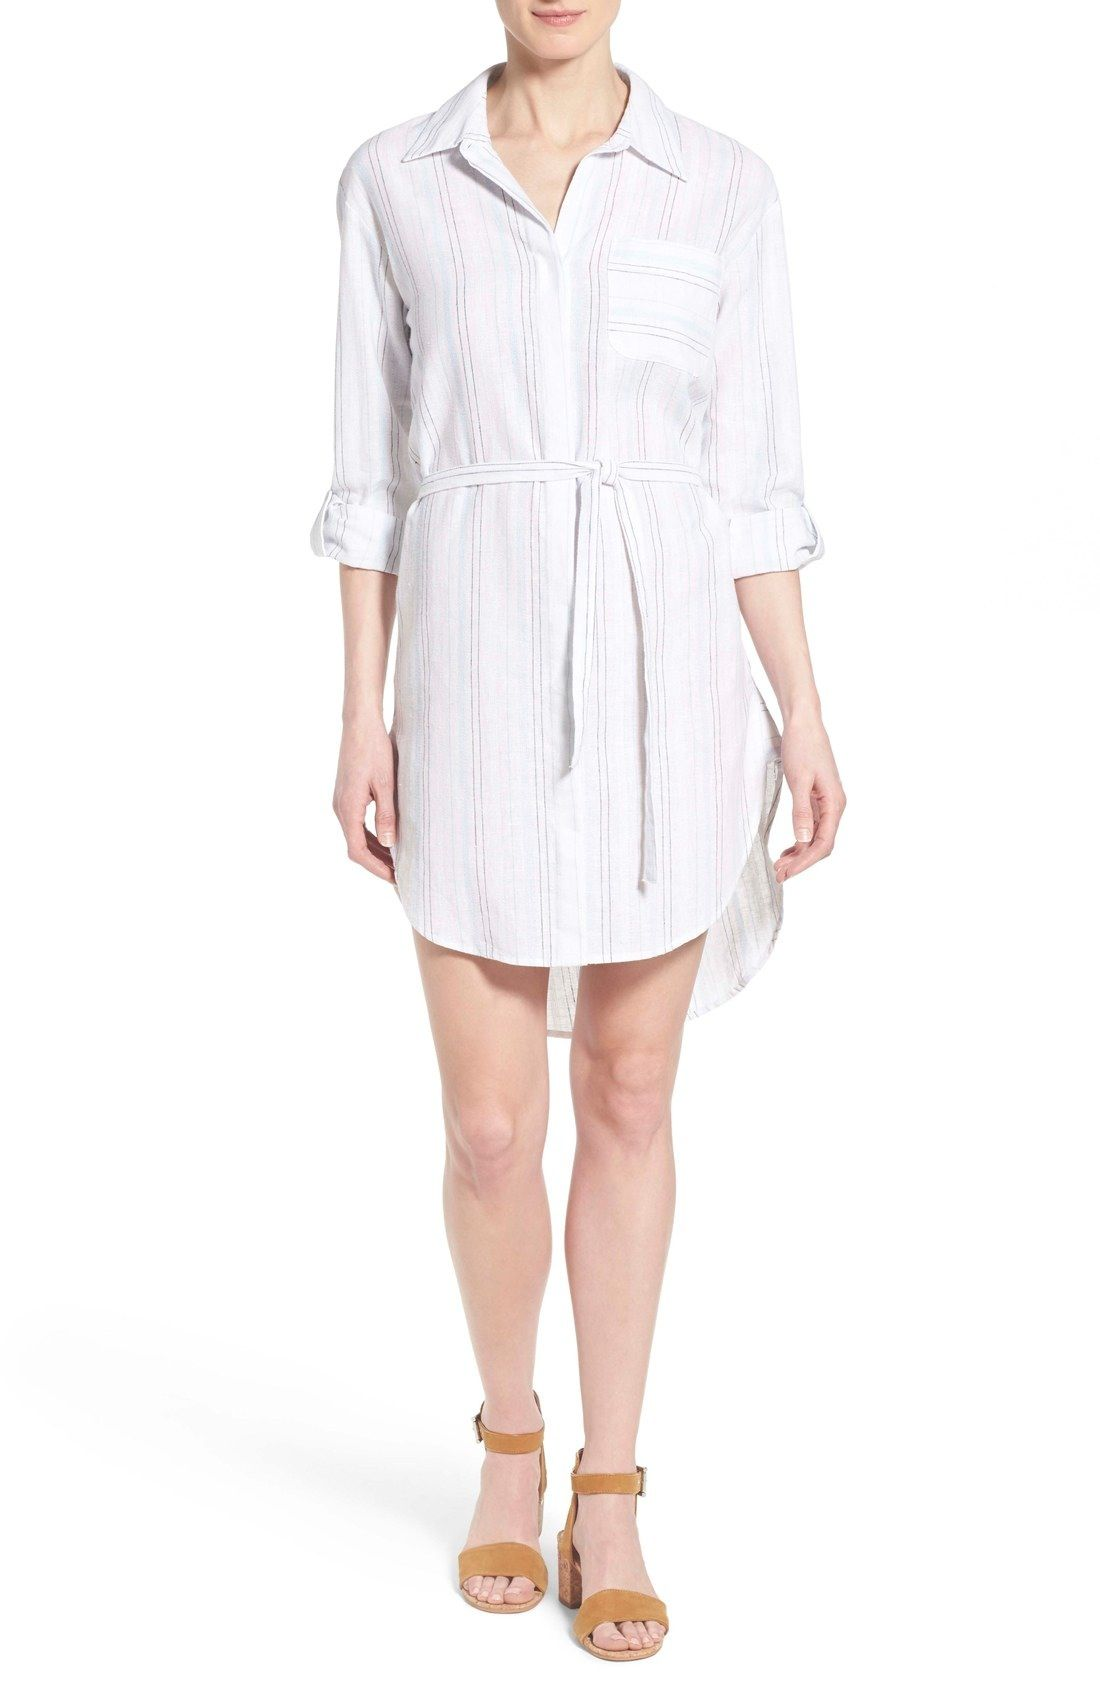 faa98599249 Two by Vince Camuto Stripe Linen Blend Shirtdress available at  Nordstrom